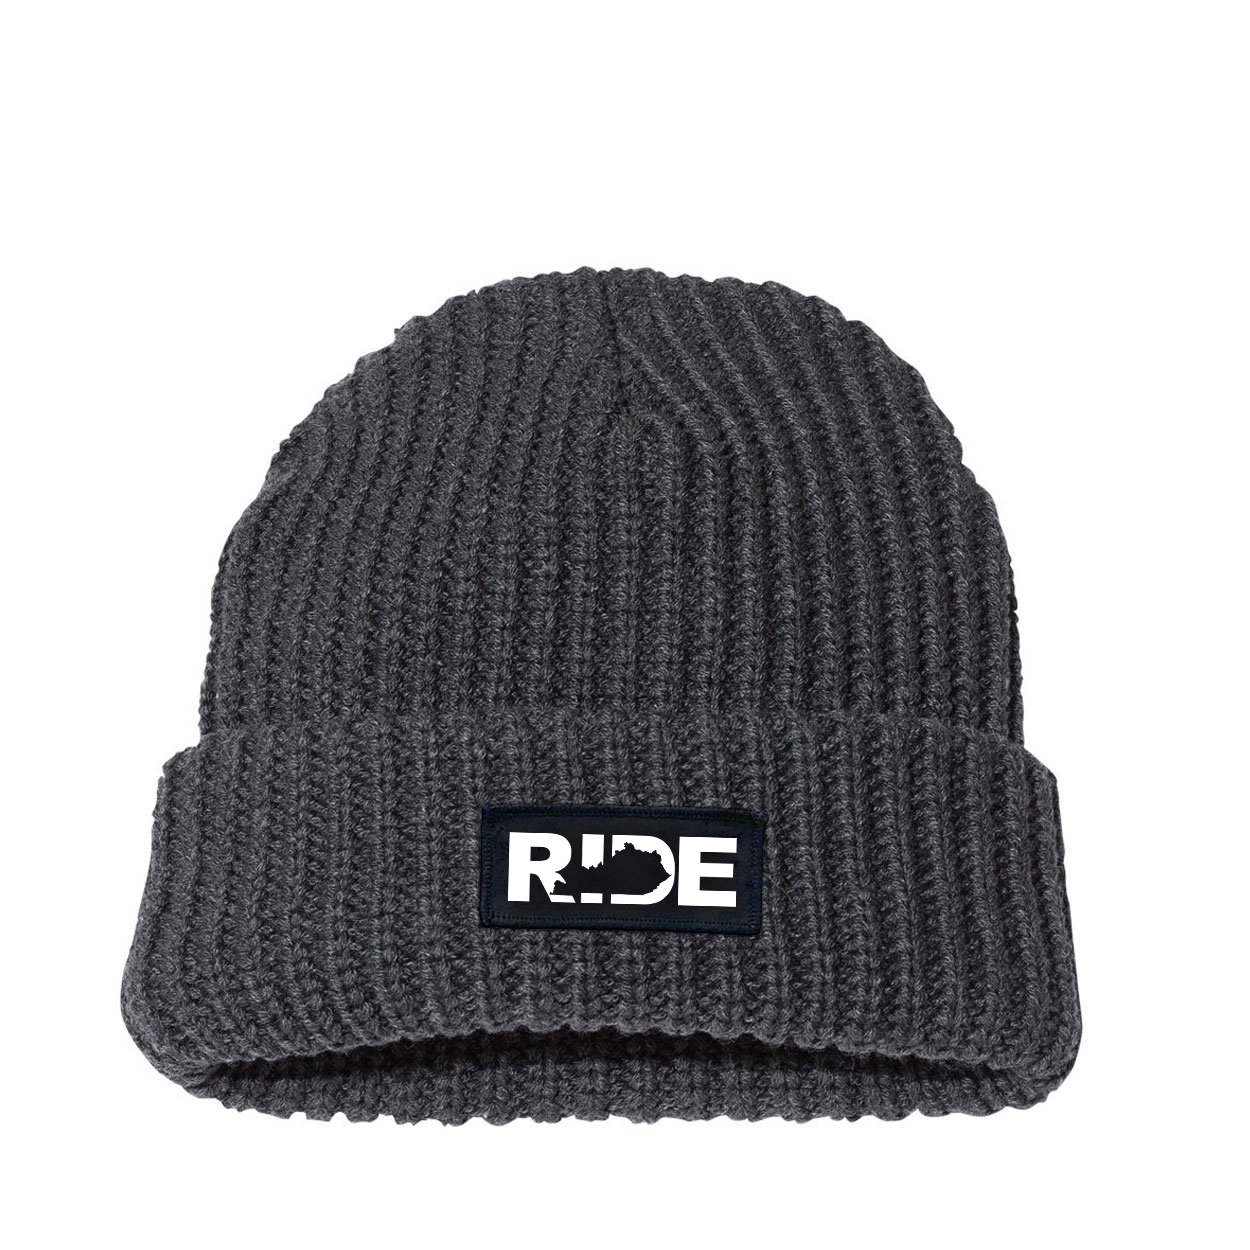 Ride Kentucky Night Out Woven Patch Roll Up Jumbo Chunky Knit Beanie Charcoal (White Logo)